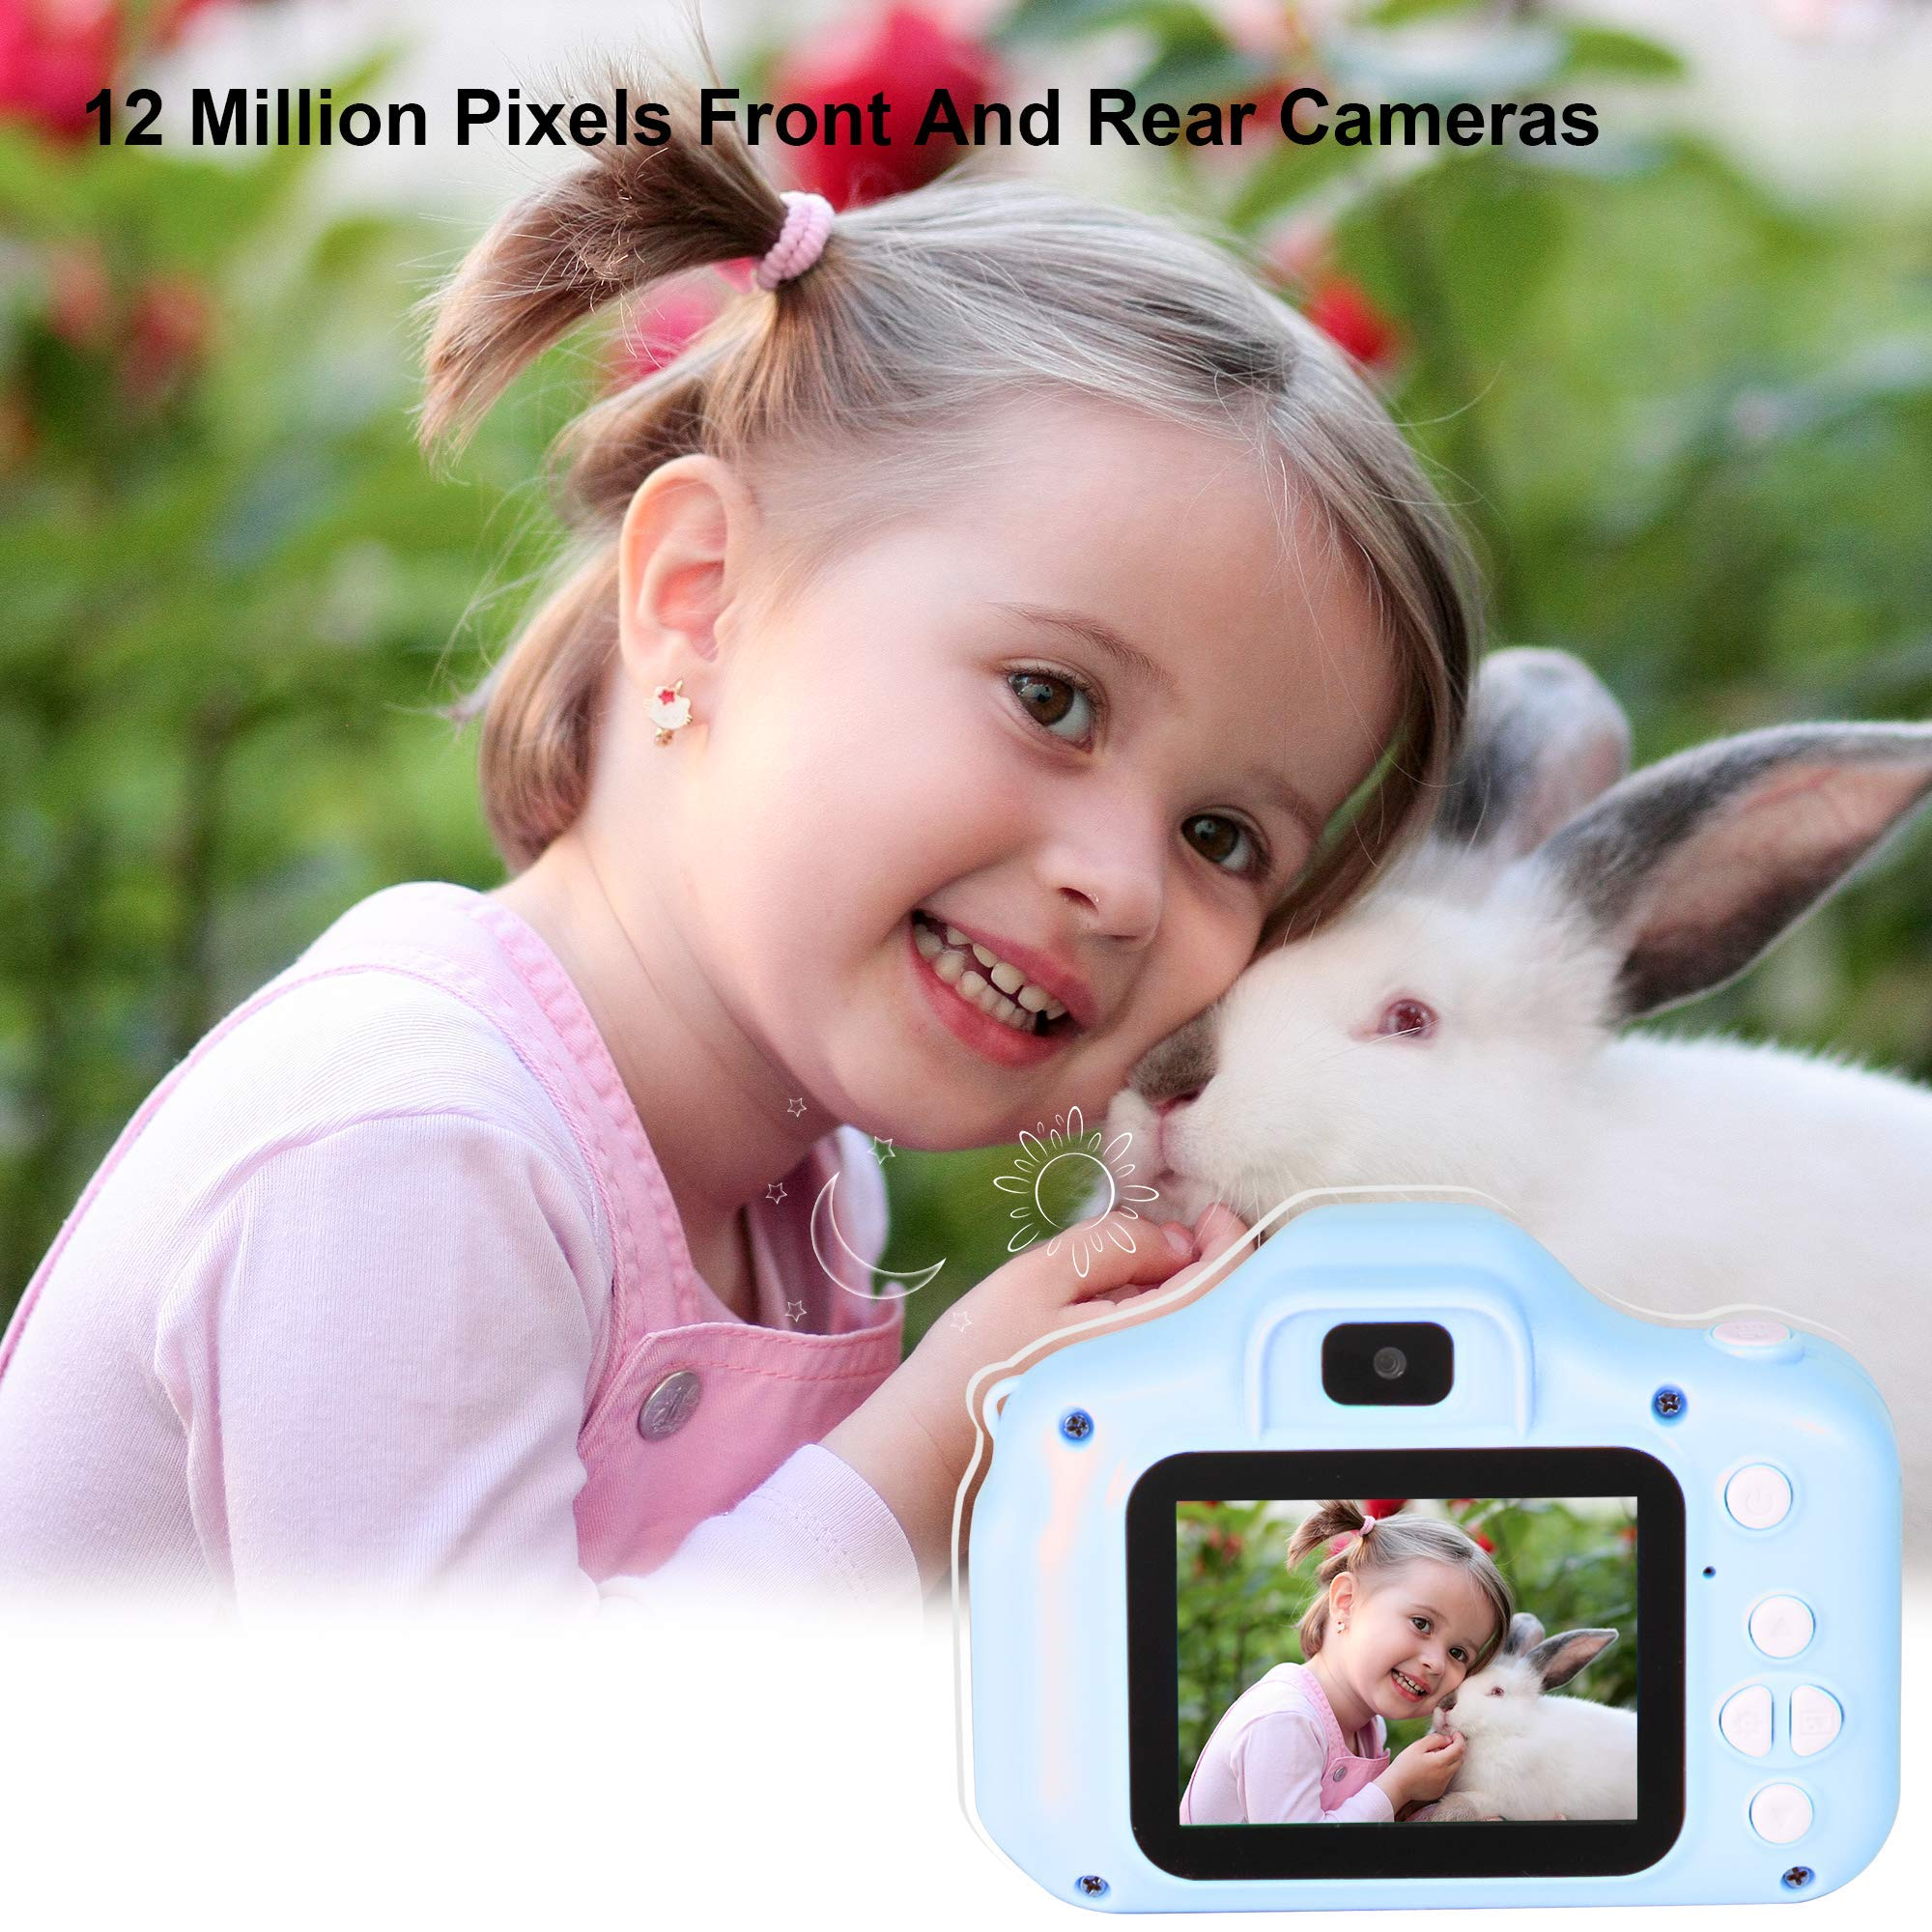 le-idea Kids Camera 1080P Dual 12MP Mini 2.0 inch IPS Display Shockproof Child Digital Selfie HD Camera Camcorder Gifts for 3-10 Year Old Girls & Boys Outdoor Play, Blue (32GB Memory Card Included) by le-idea (Image #2)